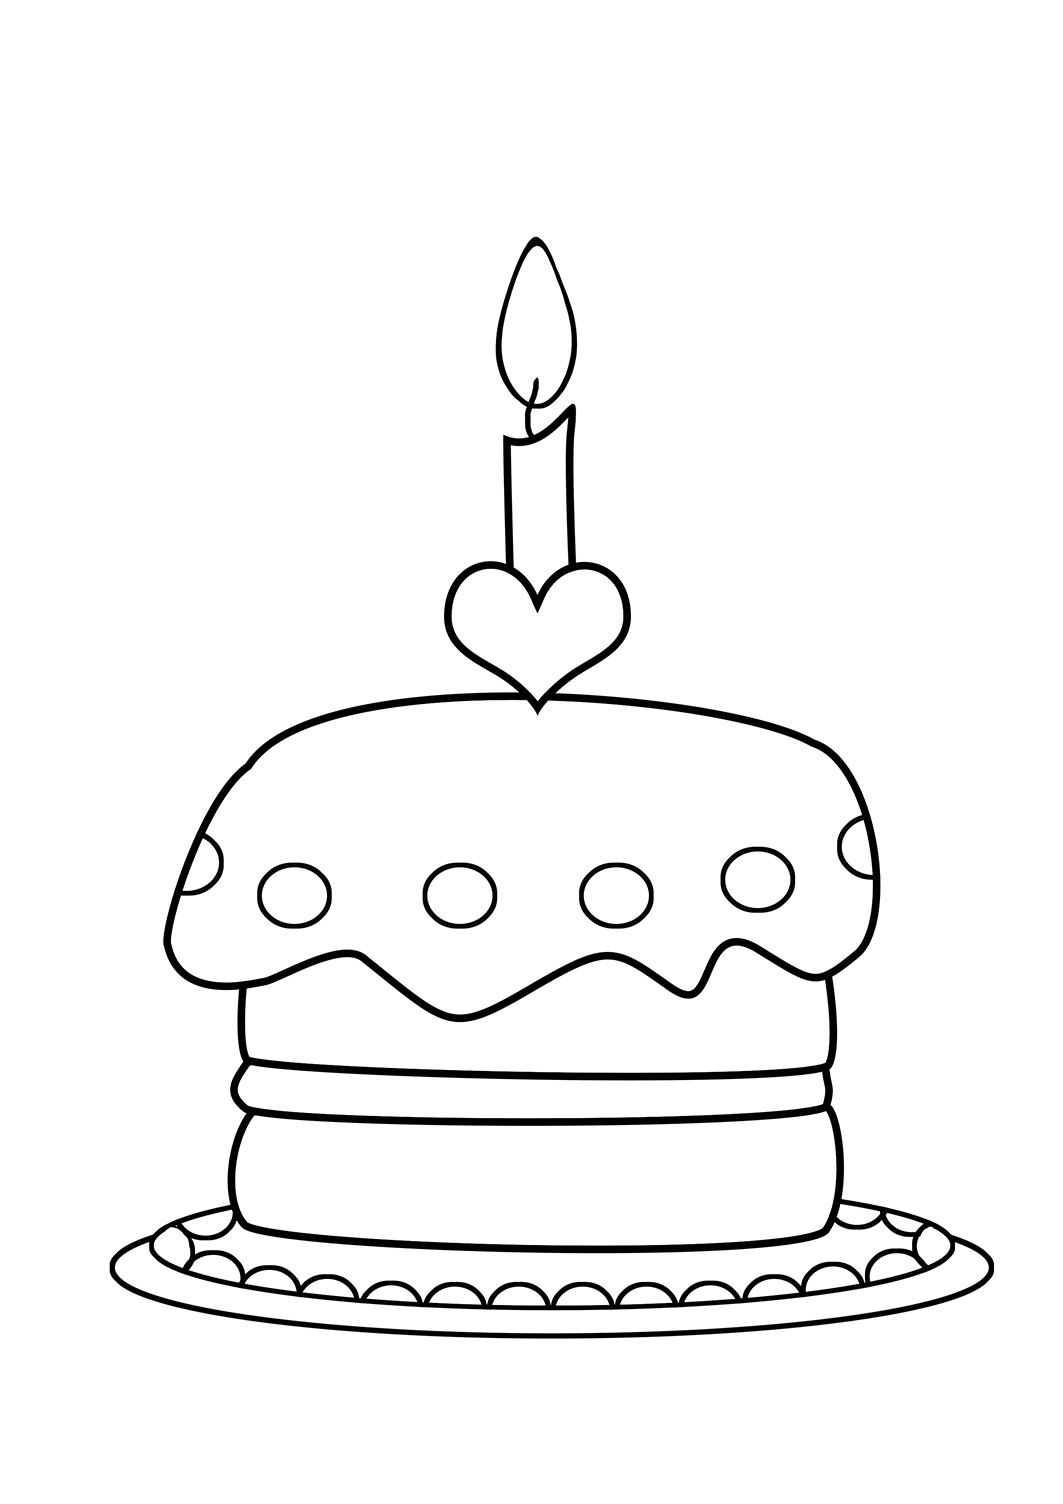 Coloring pages birthday cake - Birthday Cake Coloring Pages Funny Birthday Balloons To Color